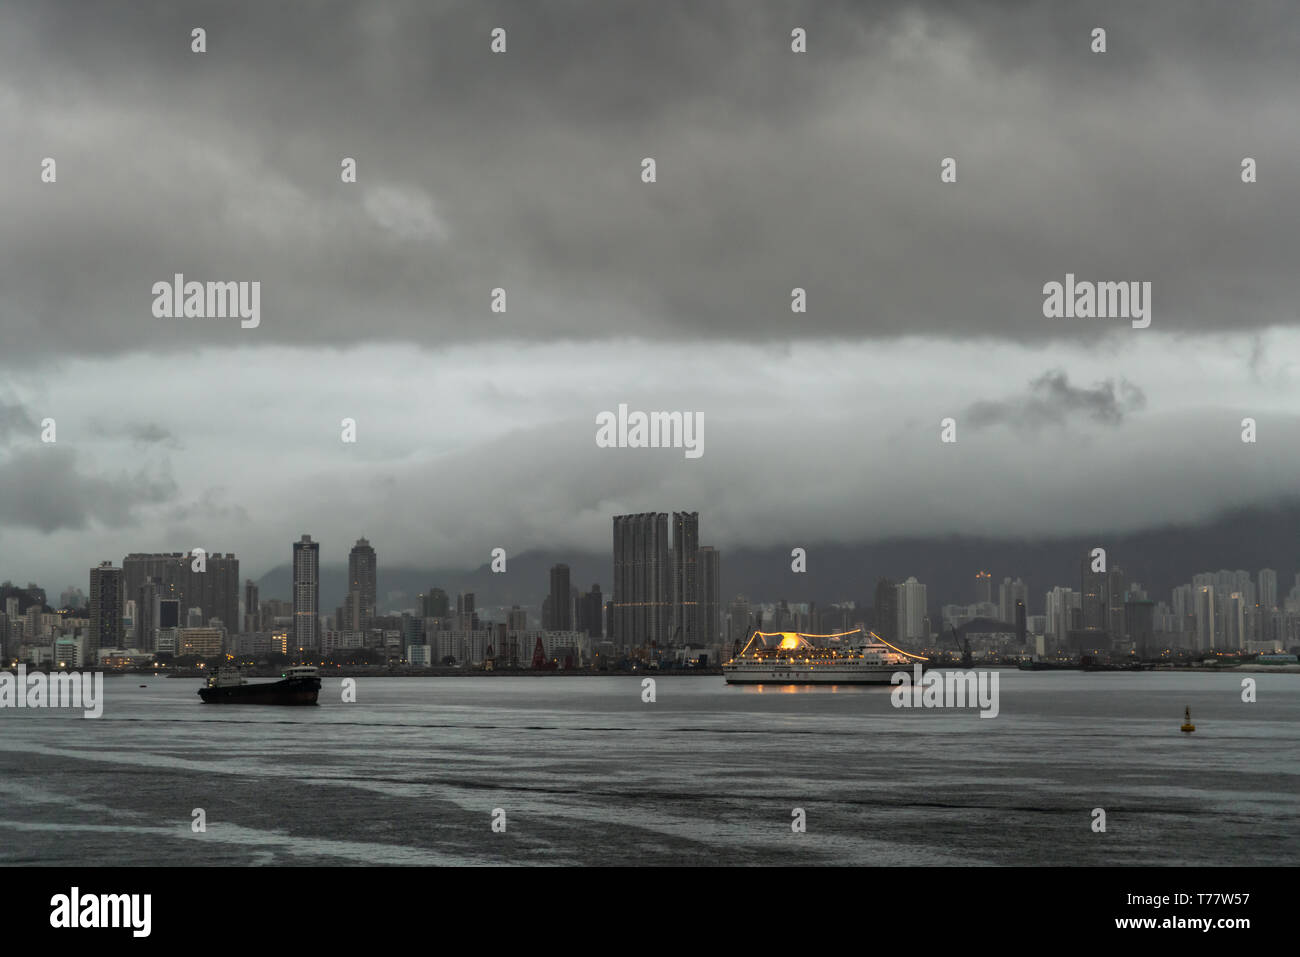 Hong Kong, China - March 7, 2019: Very early morning under dark rainy sky. Kowloon Bay, skyline with tall buildings and couple of ships, one decorated - Stock Image